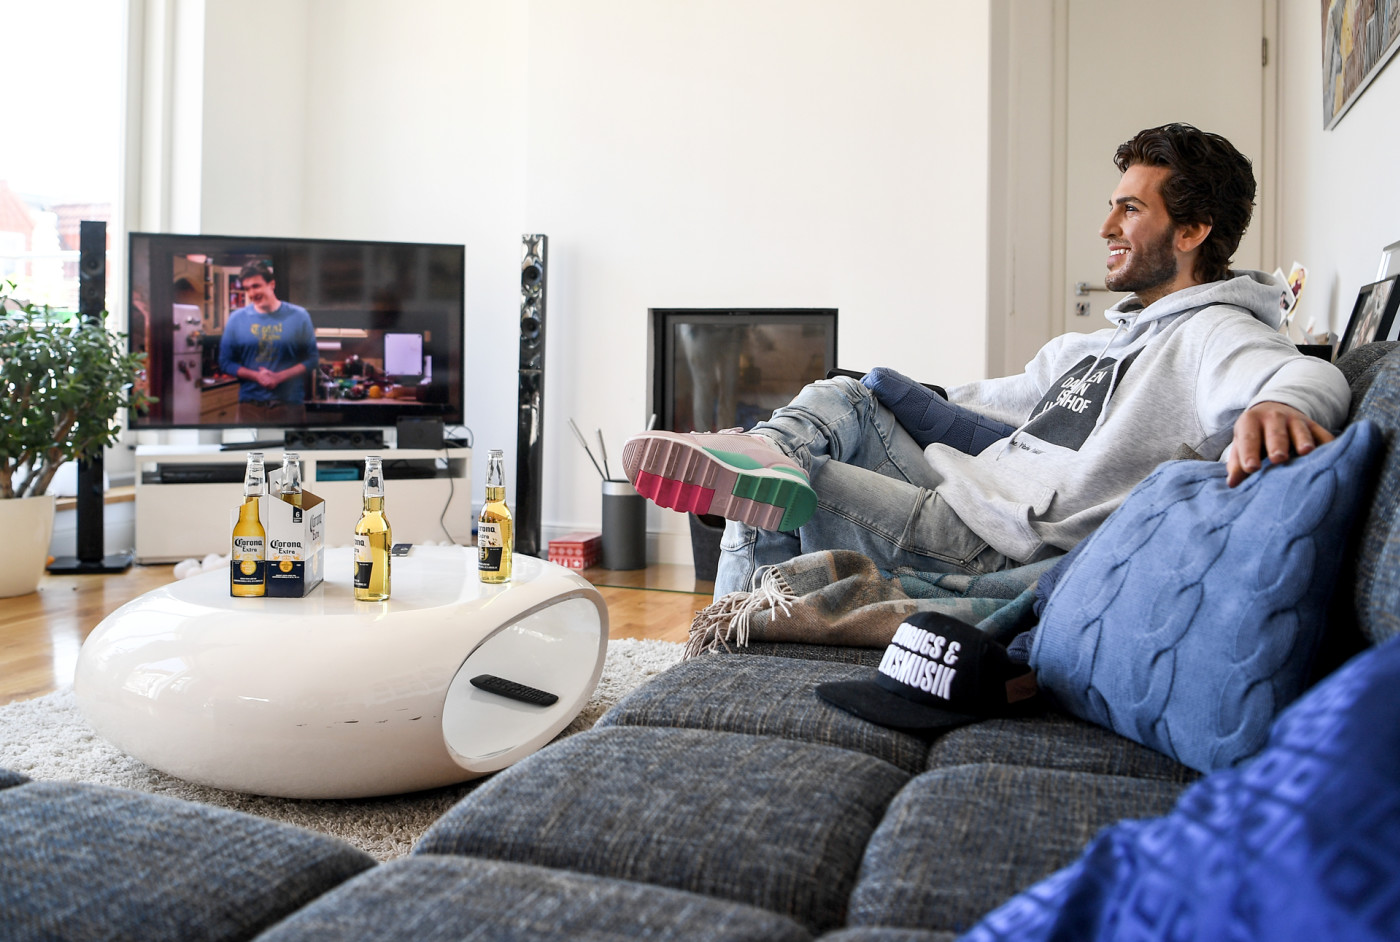 The wax figure of the actor Elyas M'Barek is shown in a scene on a couch while watching television